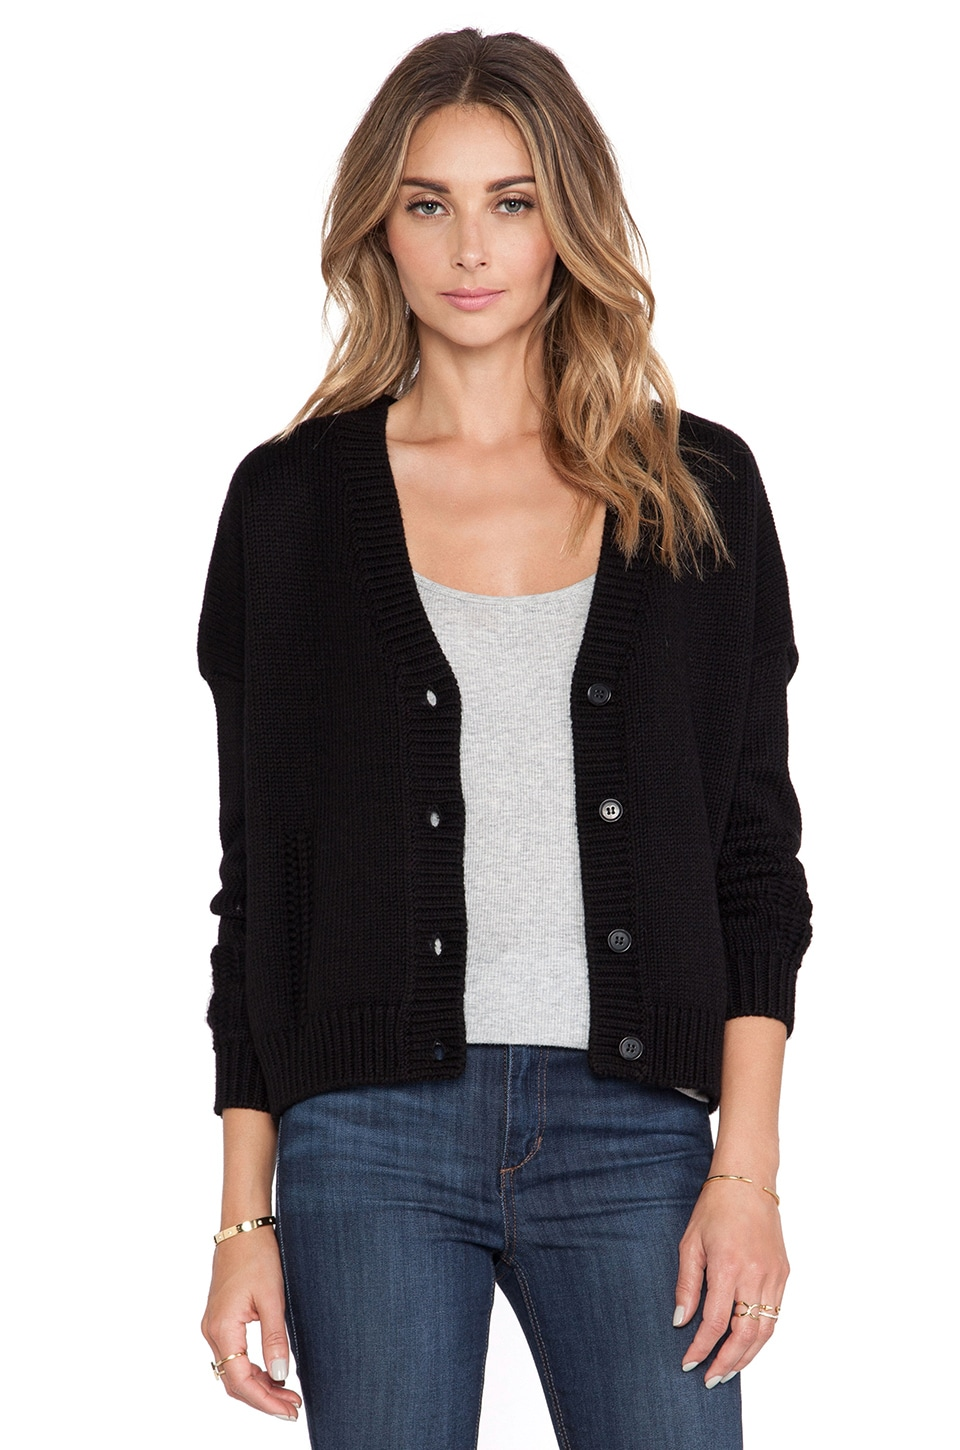 DemyLee Peyton Cardigan in Black